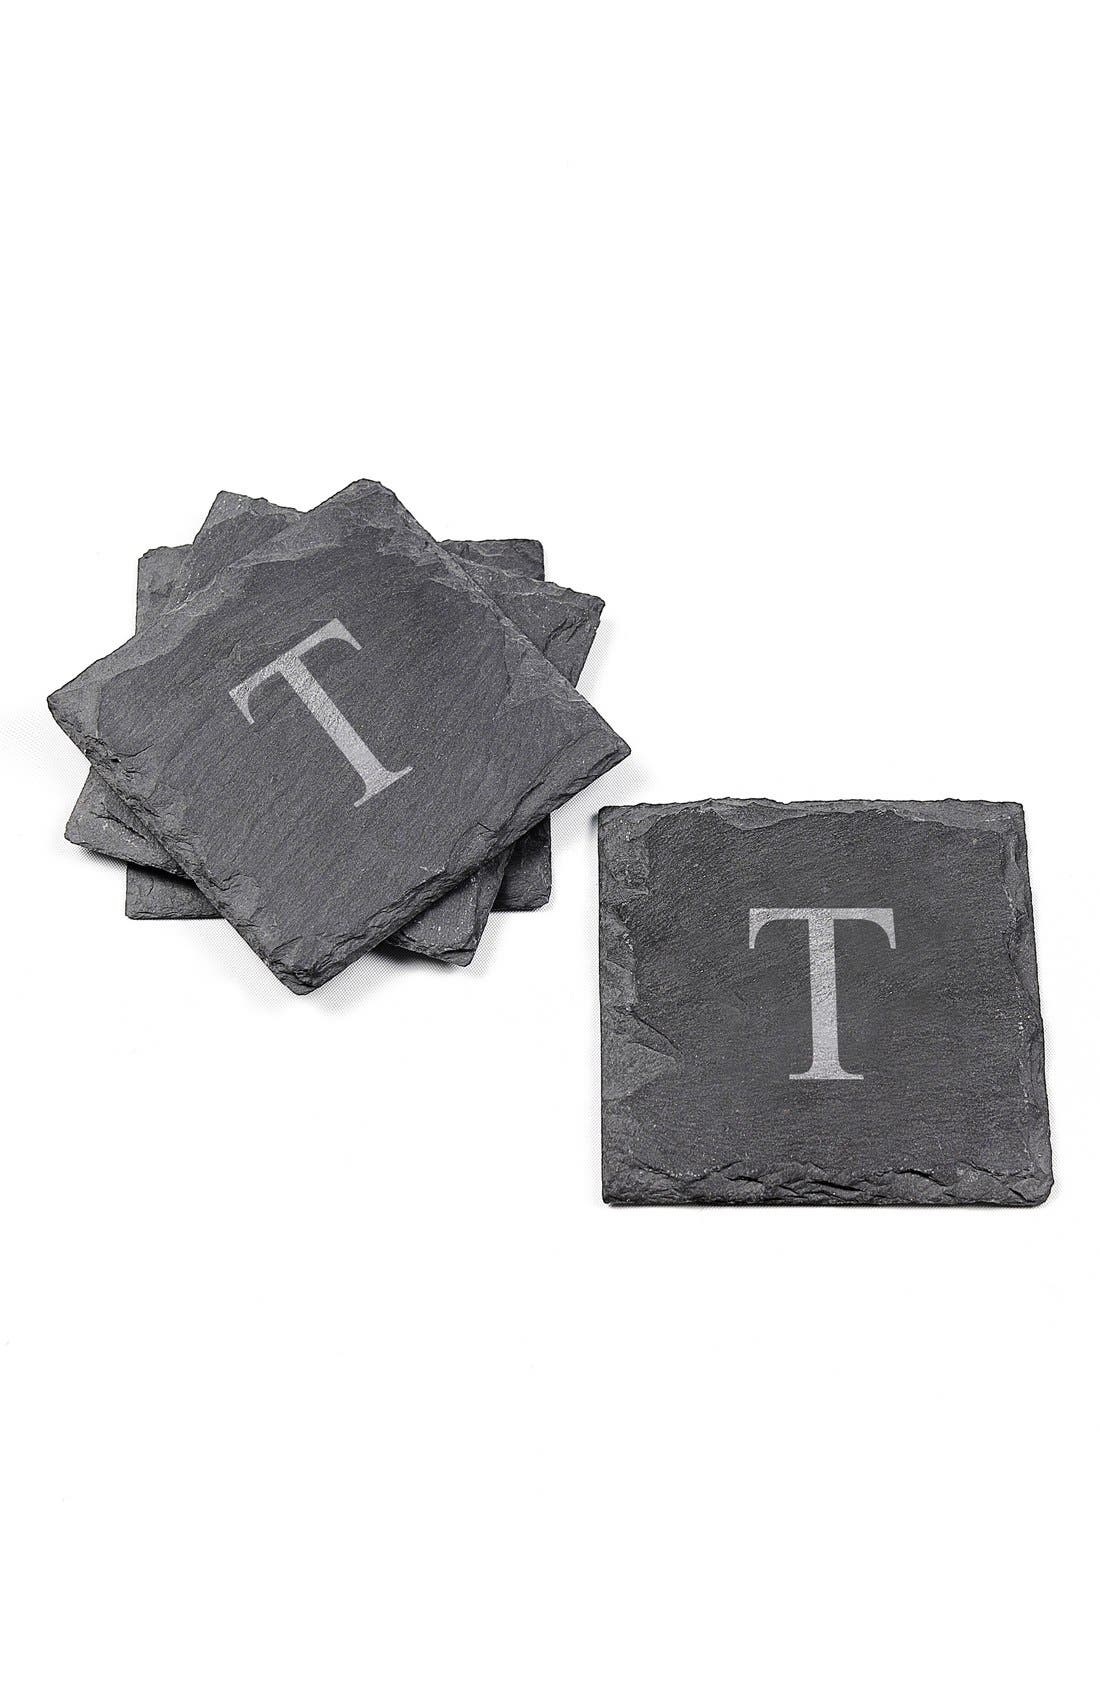 Monogram Slate Coasters,                         Main,                         color, T